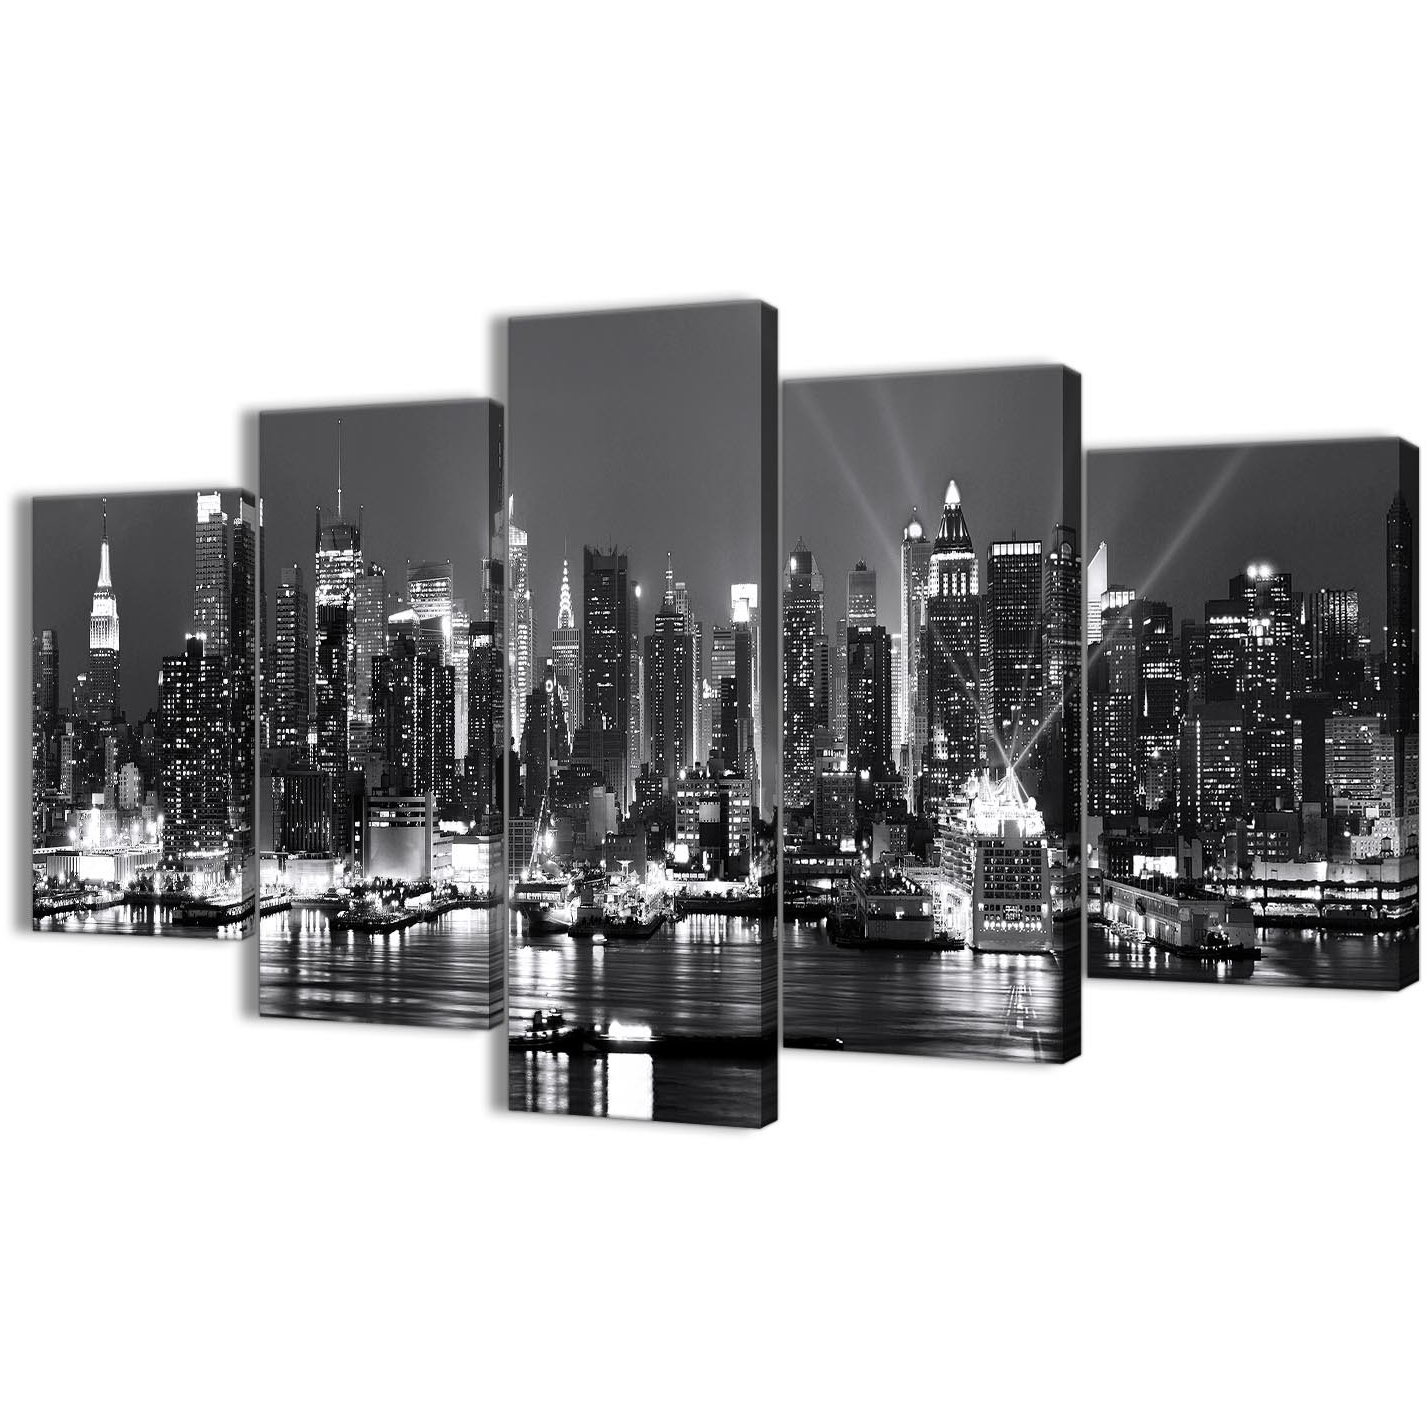 Preferred 5 Panel Landscape Canvas Wall Art Prints – New York Hudson River With New York Canvas Wall Art (View 12 of 15)